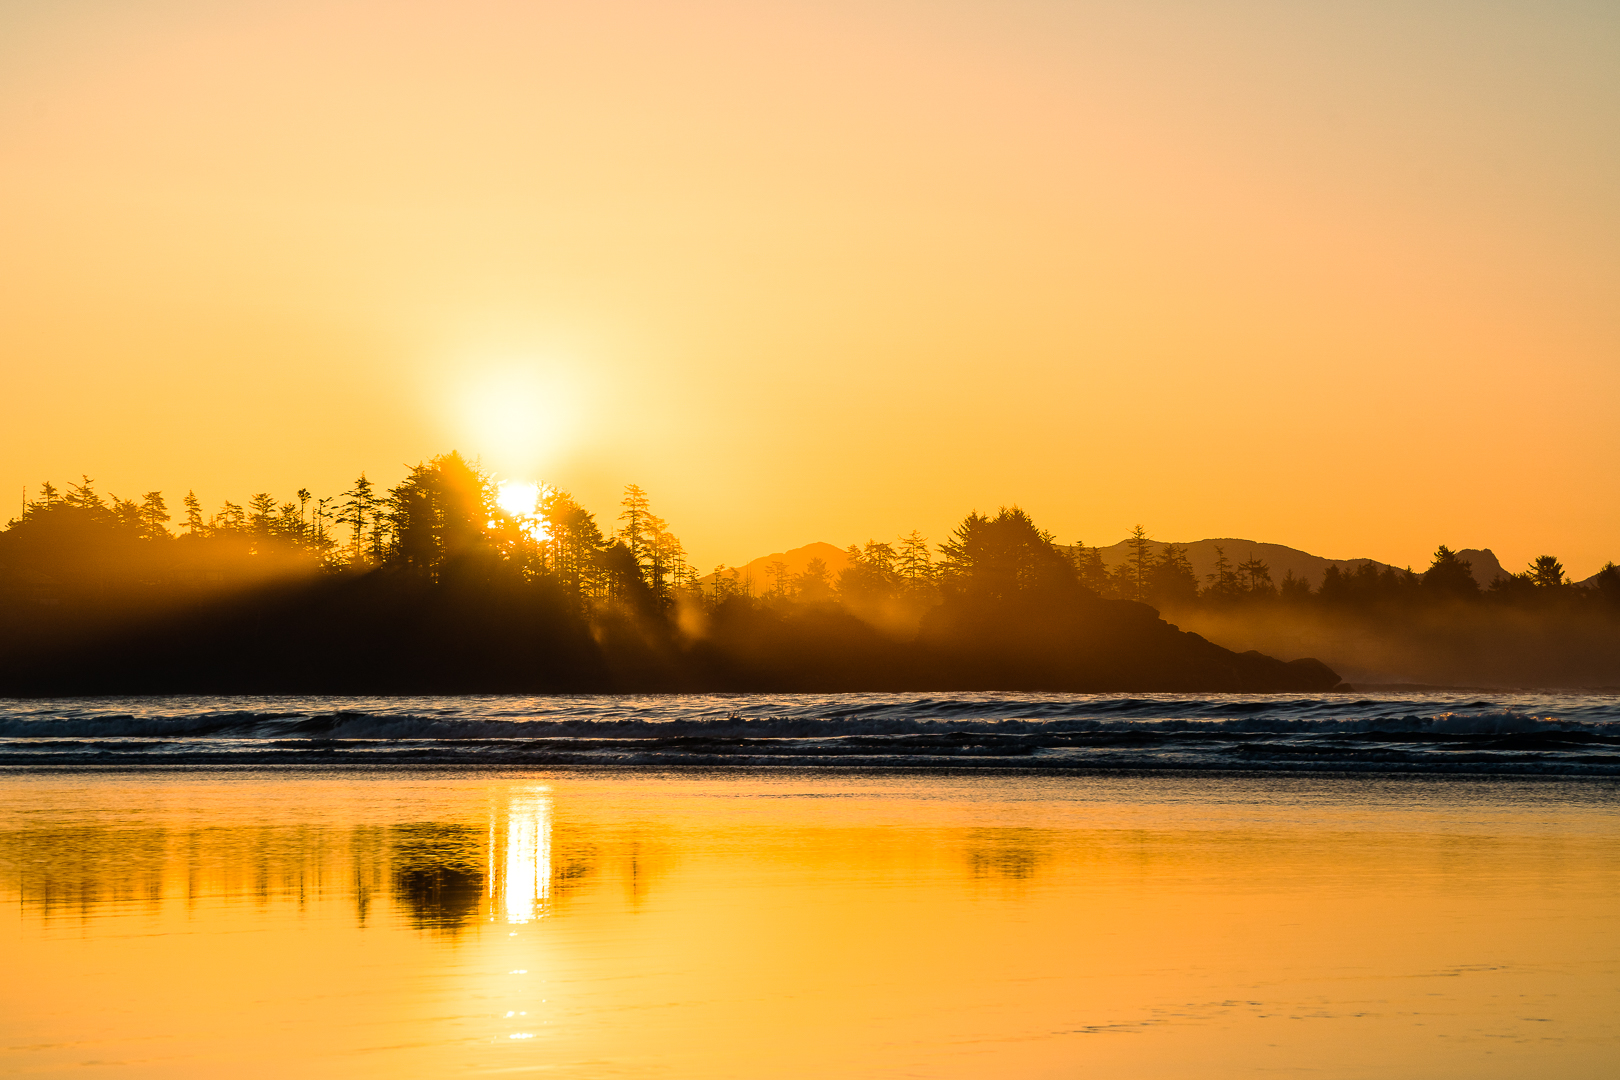 tofino-chesterman-beach-herron-01085.jpg